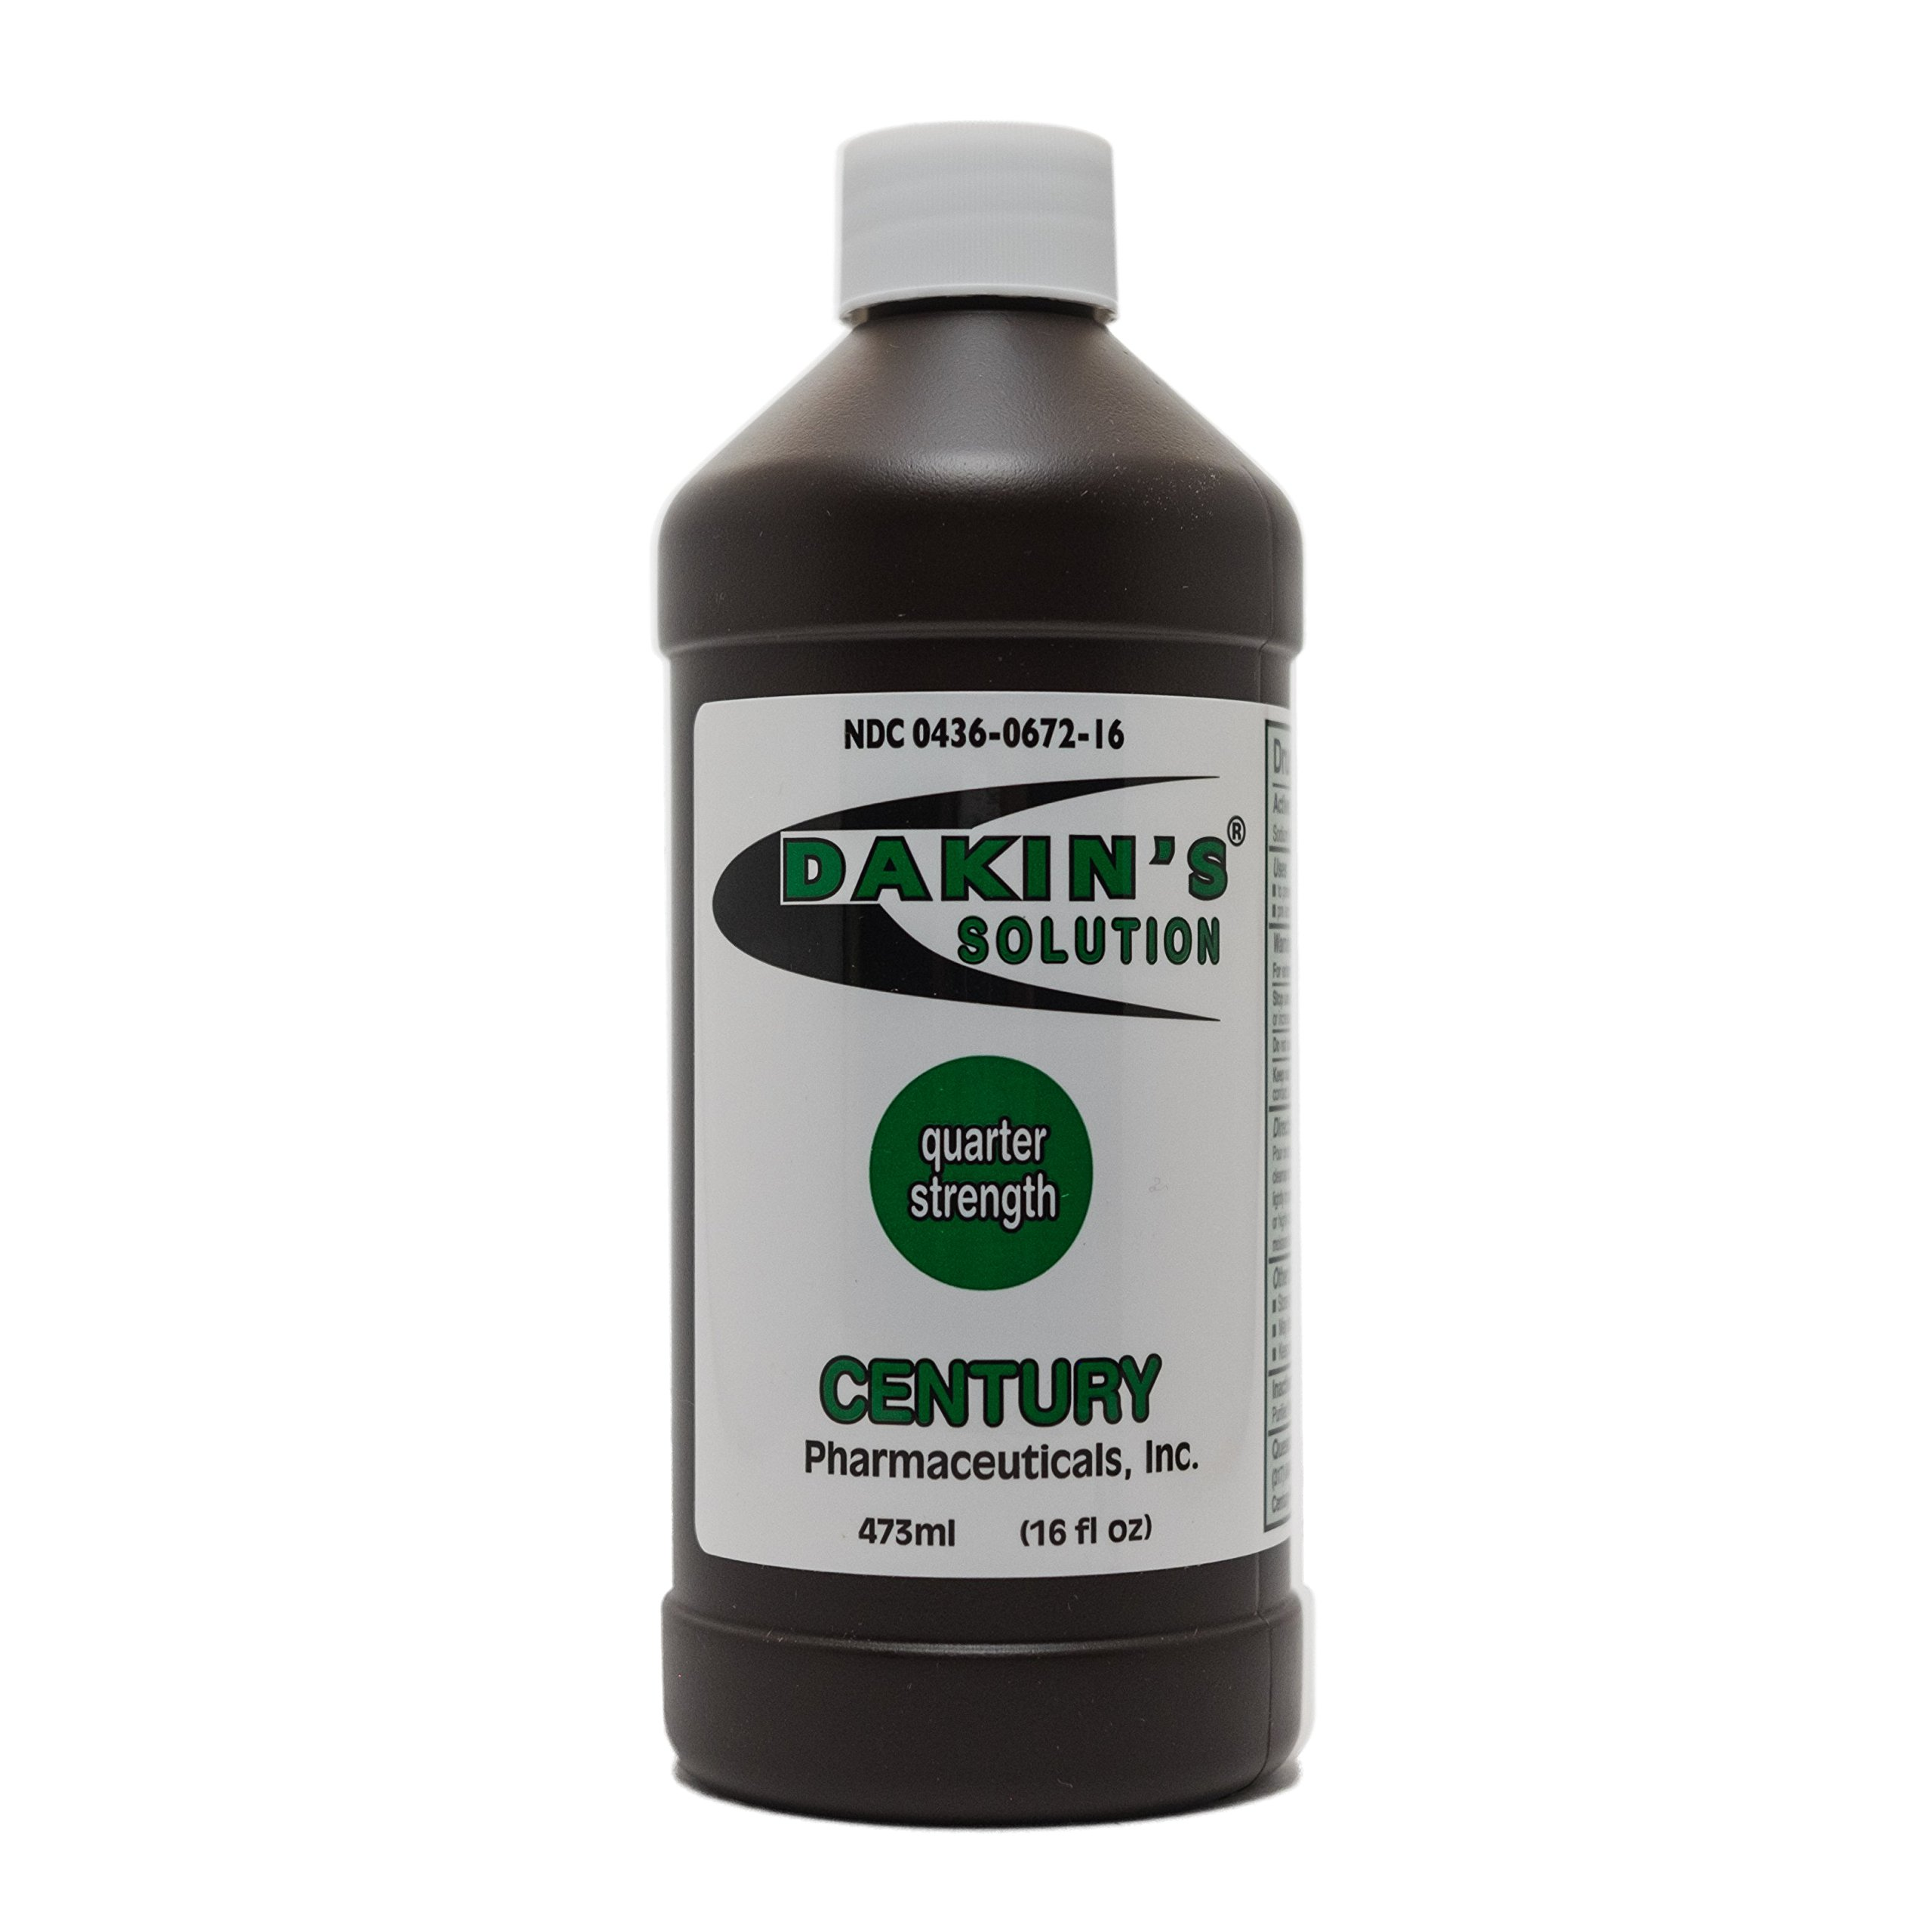 Dakin's Solution-Quarter Strength 304360672168 Sodium Hypochlorite 0.125 % Wound Therapy for Acute and Chronic Wounds by Century Pharmaceuticals